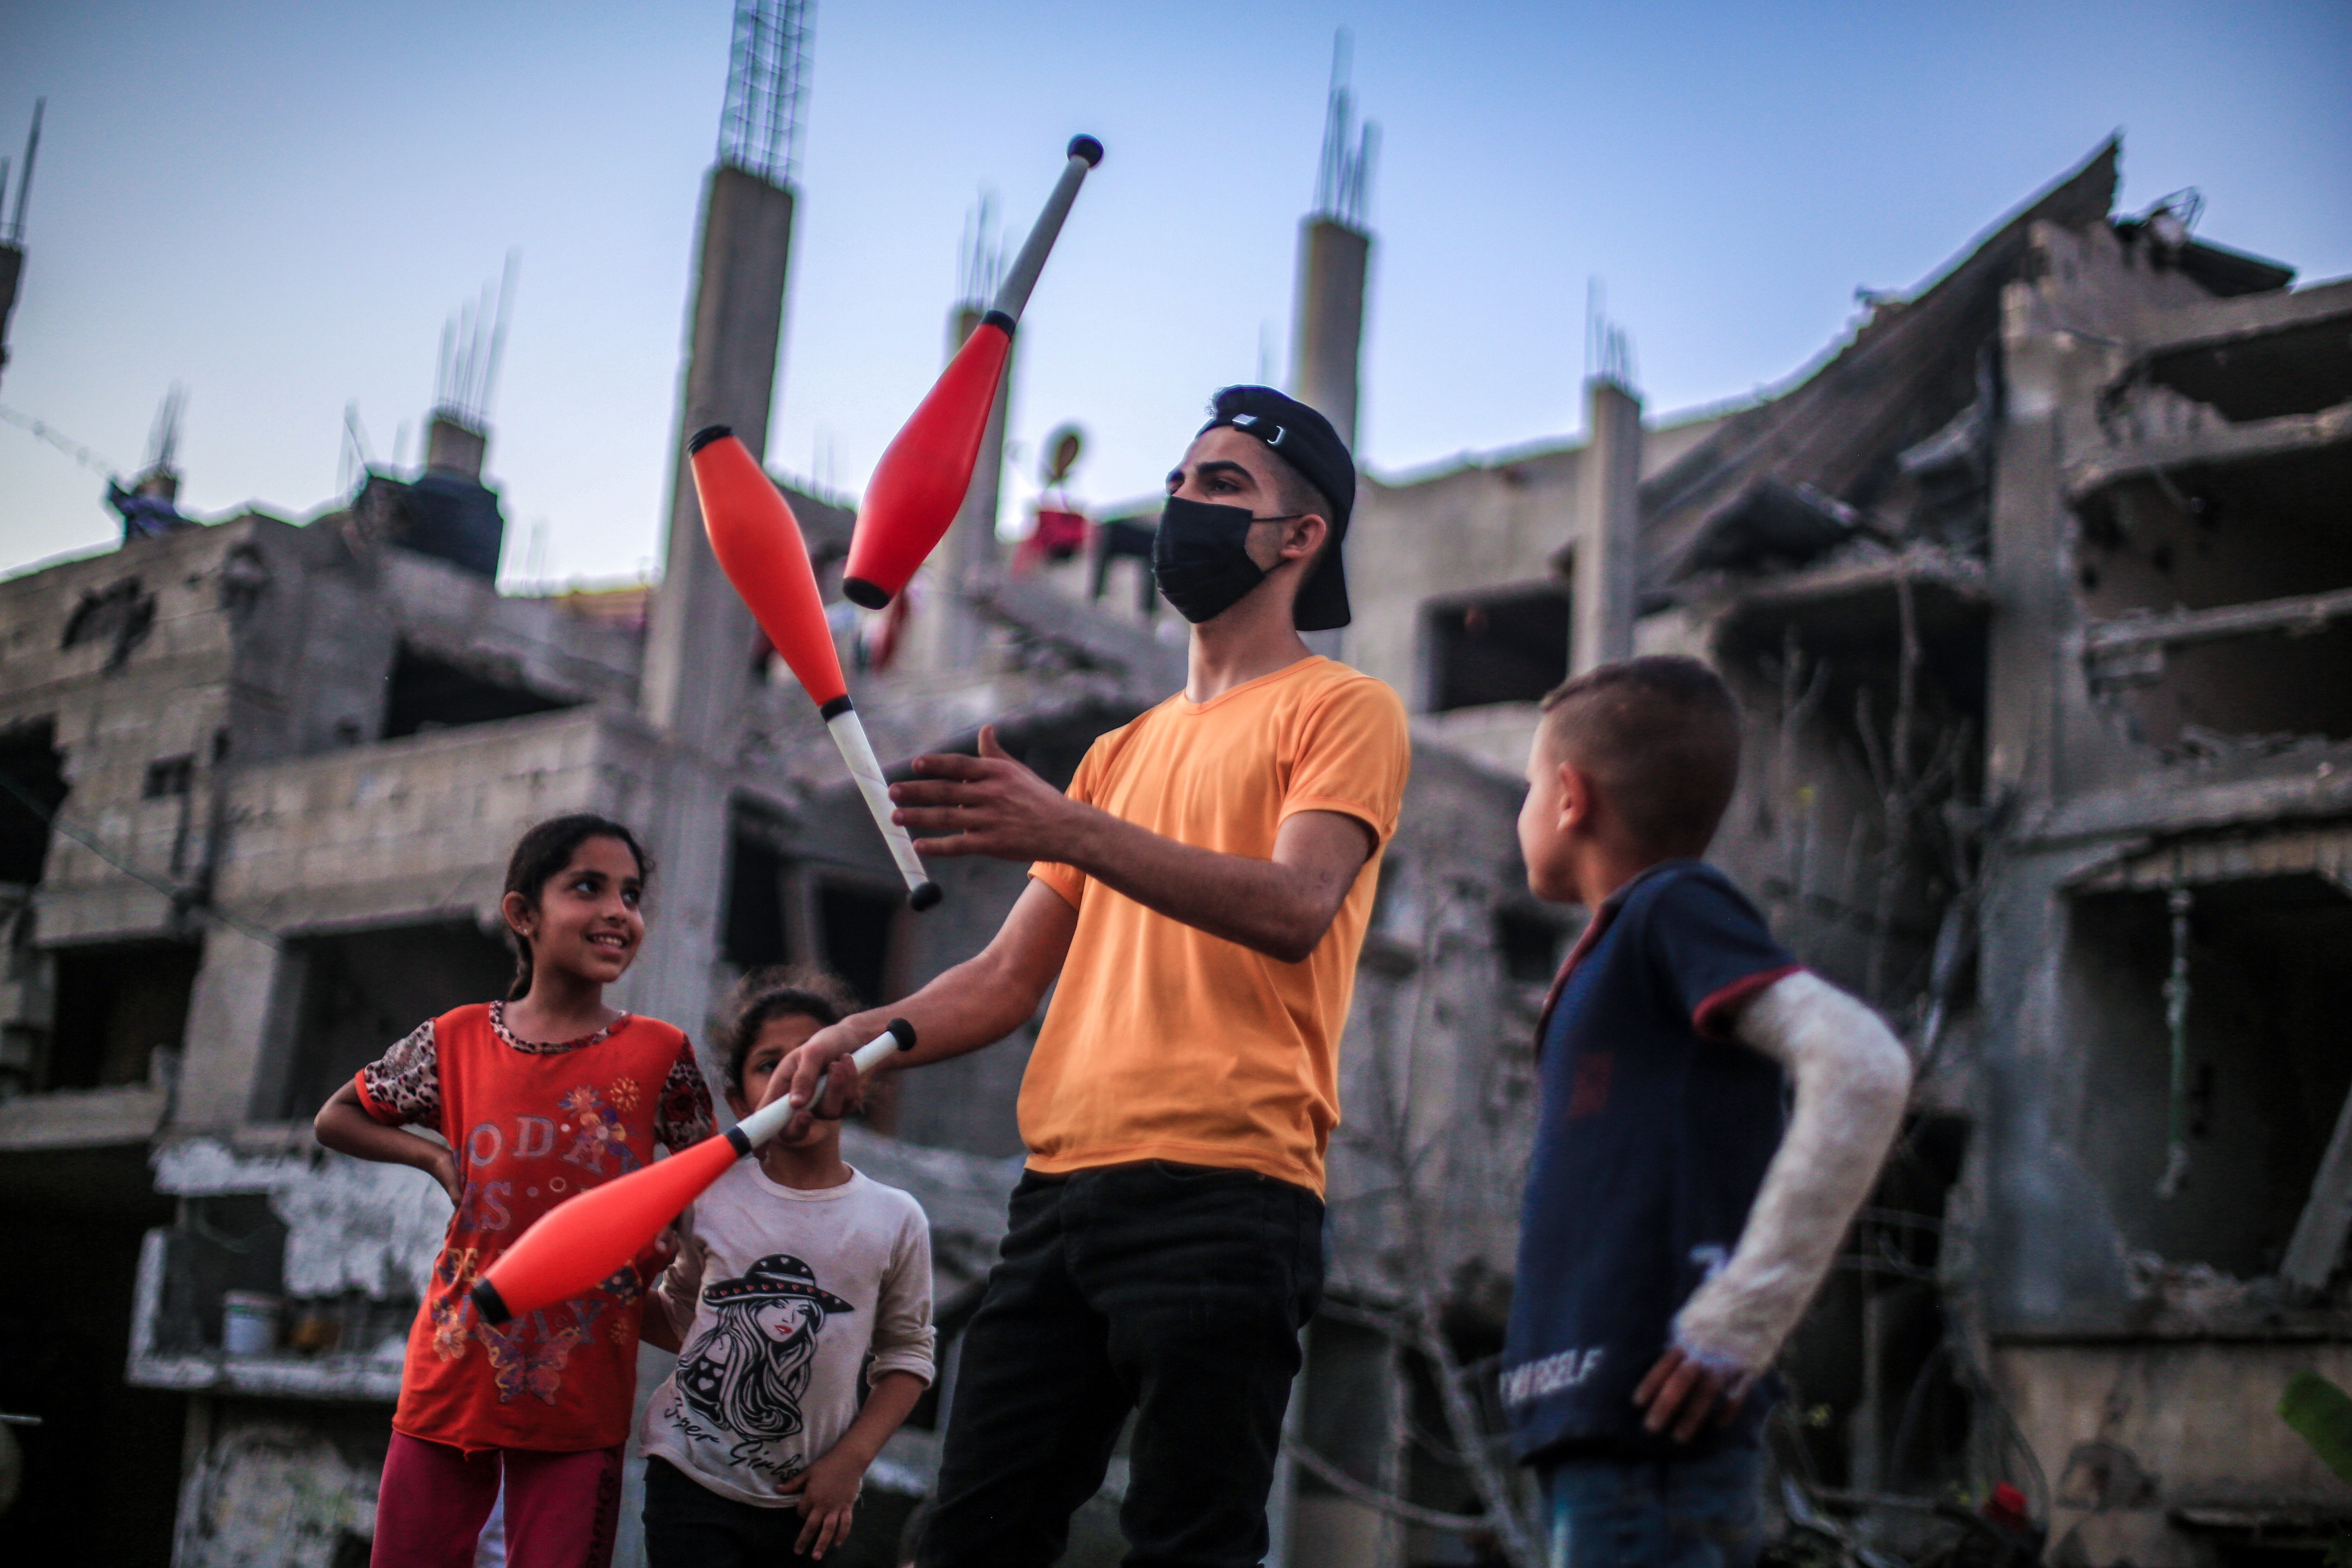 BEIT HANOUN, GAZA - MAY 25: Mohammad Recep, 17, plays to enjoy children on rubble of destroyed buildings targeted by Israeli attacks, in Beit Hanoun, Gaza on May 25, 2021. A ceasefire deal between Israel and Hamas was reached following 11 days of the worst fighting between the two sides in recent years. (Photo by Abed Zagout/Anadolu Agency via Getty Images)